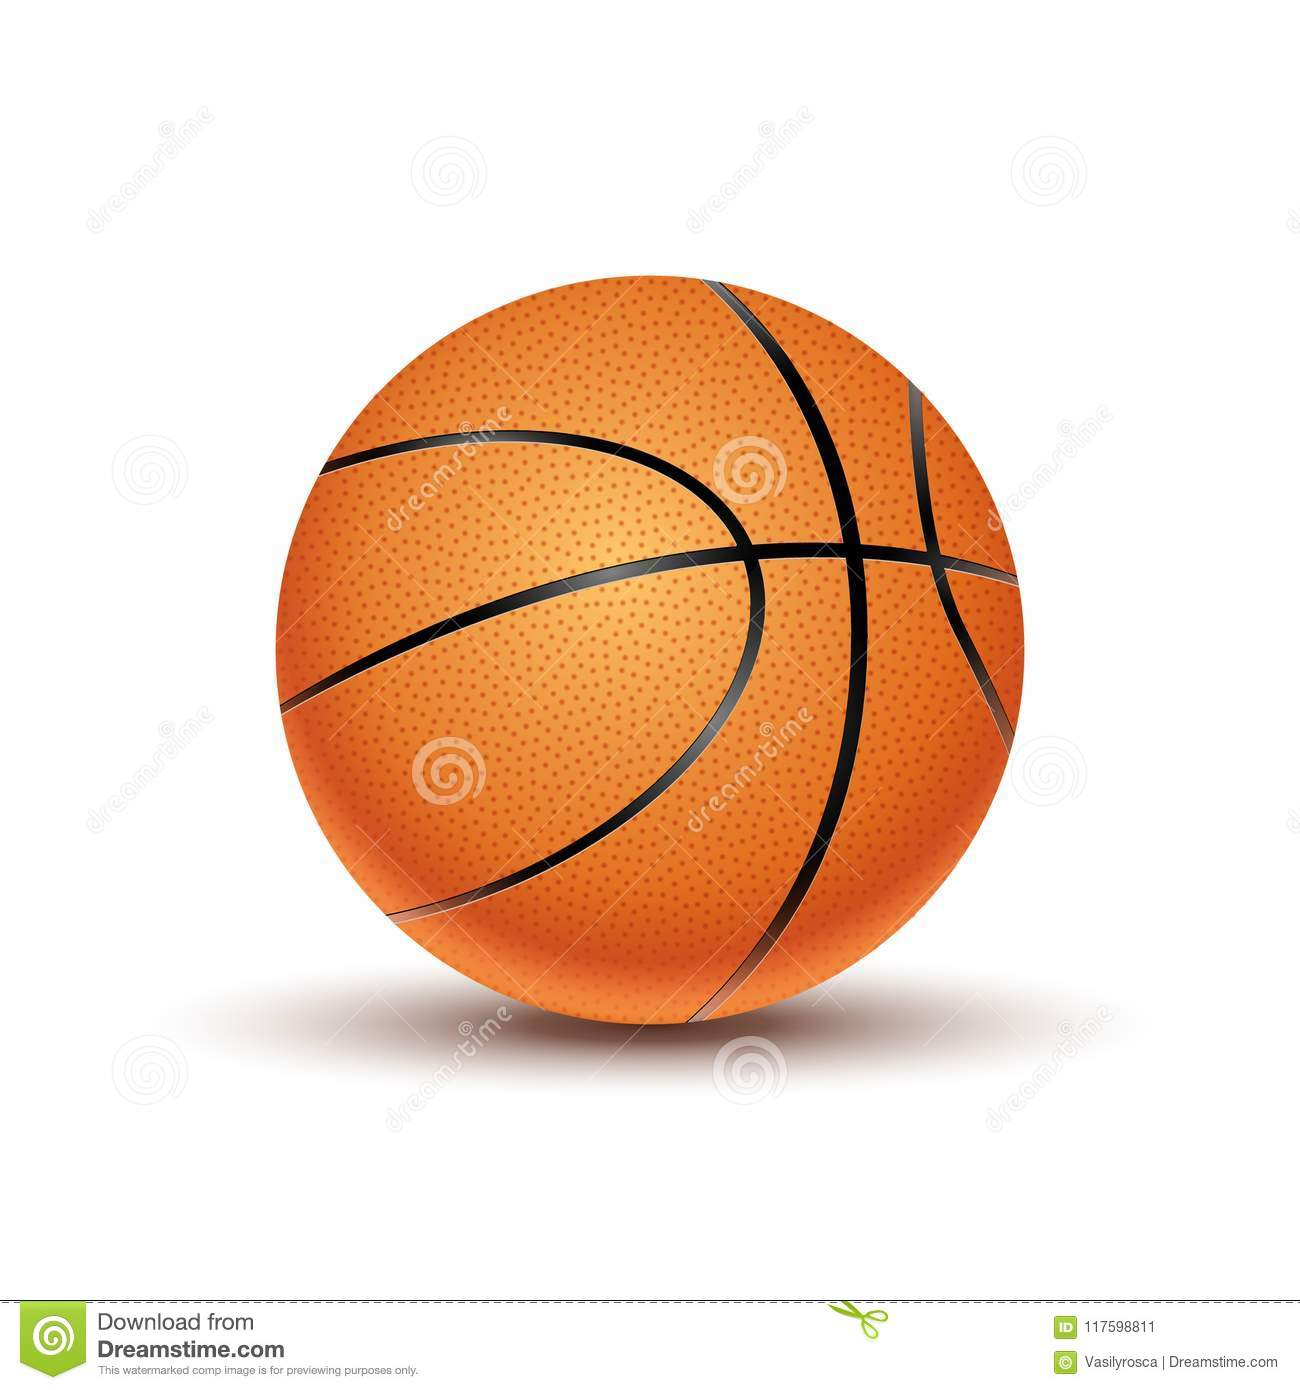 Vector Basketball ball isolated on a white background. Orange basketball play symbol. Sport icon activity